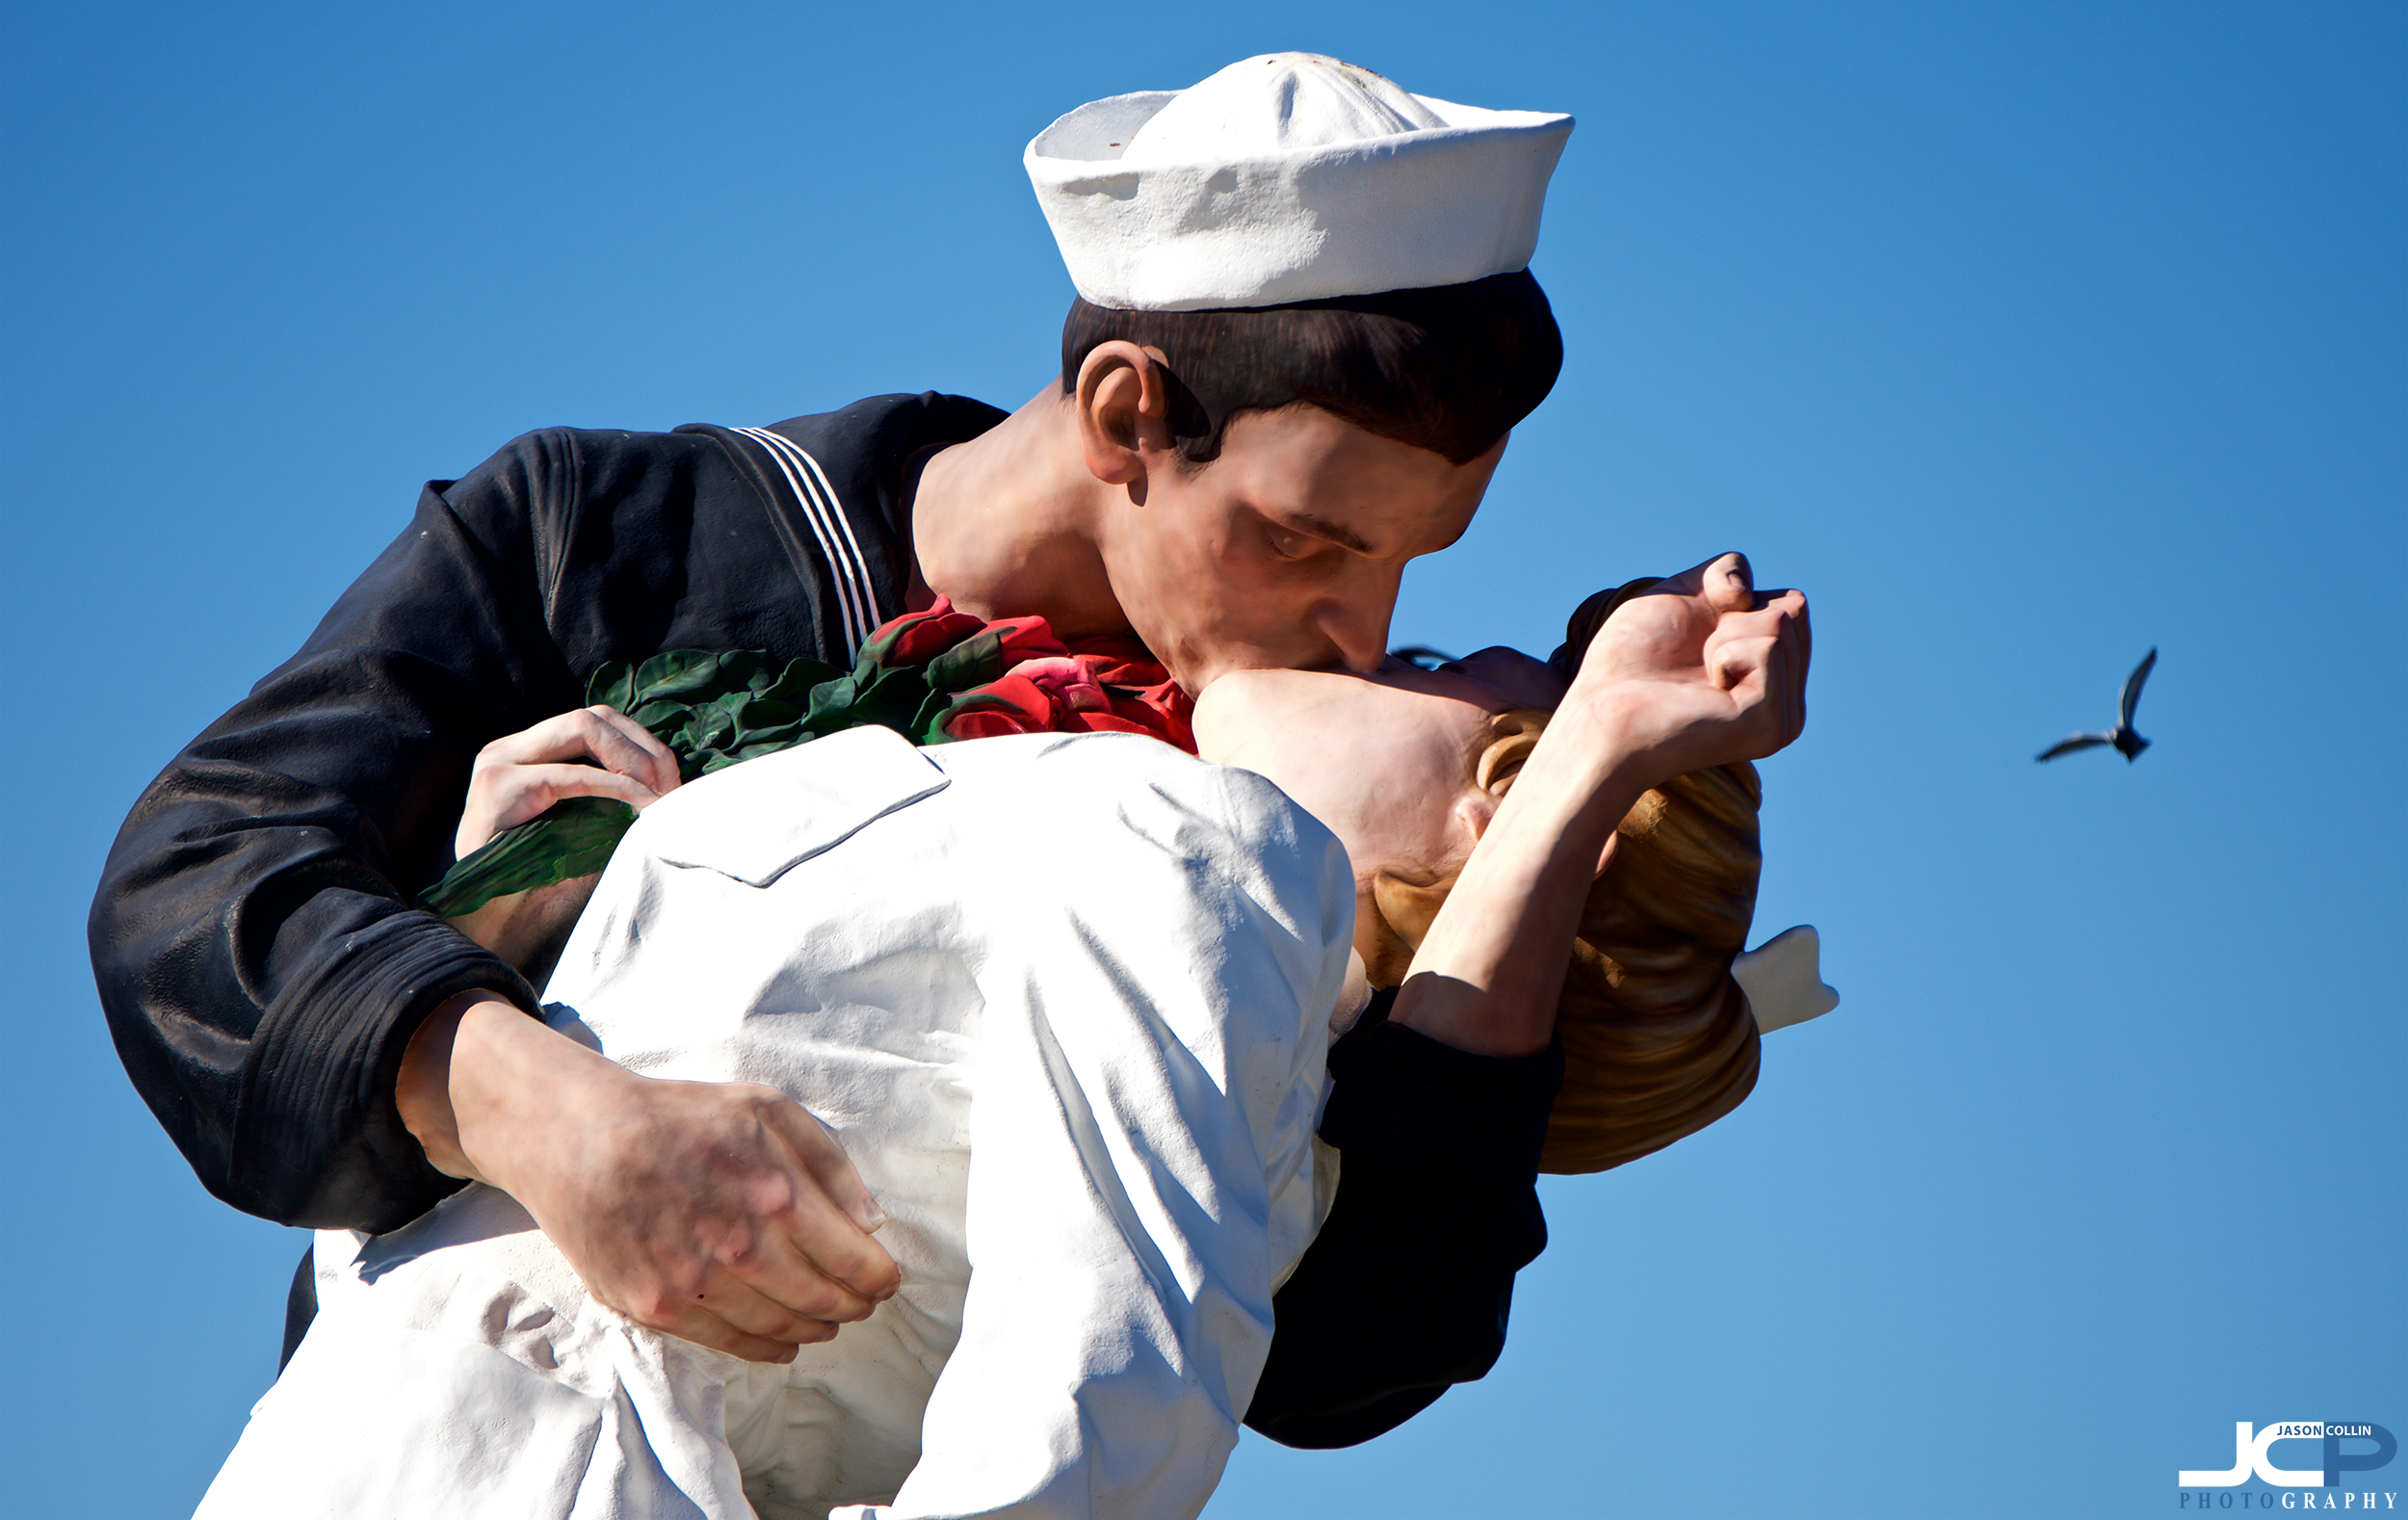 sailor kissing woman stature san diego